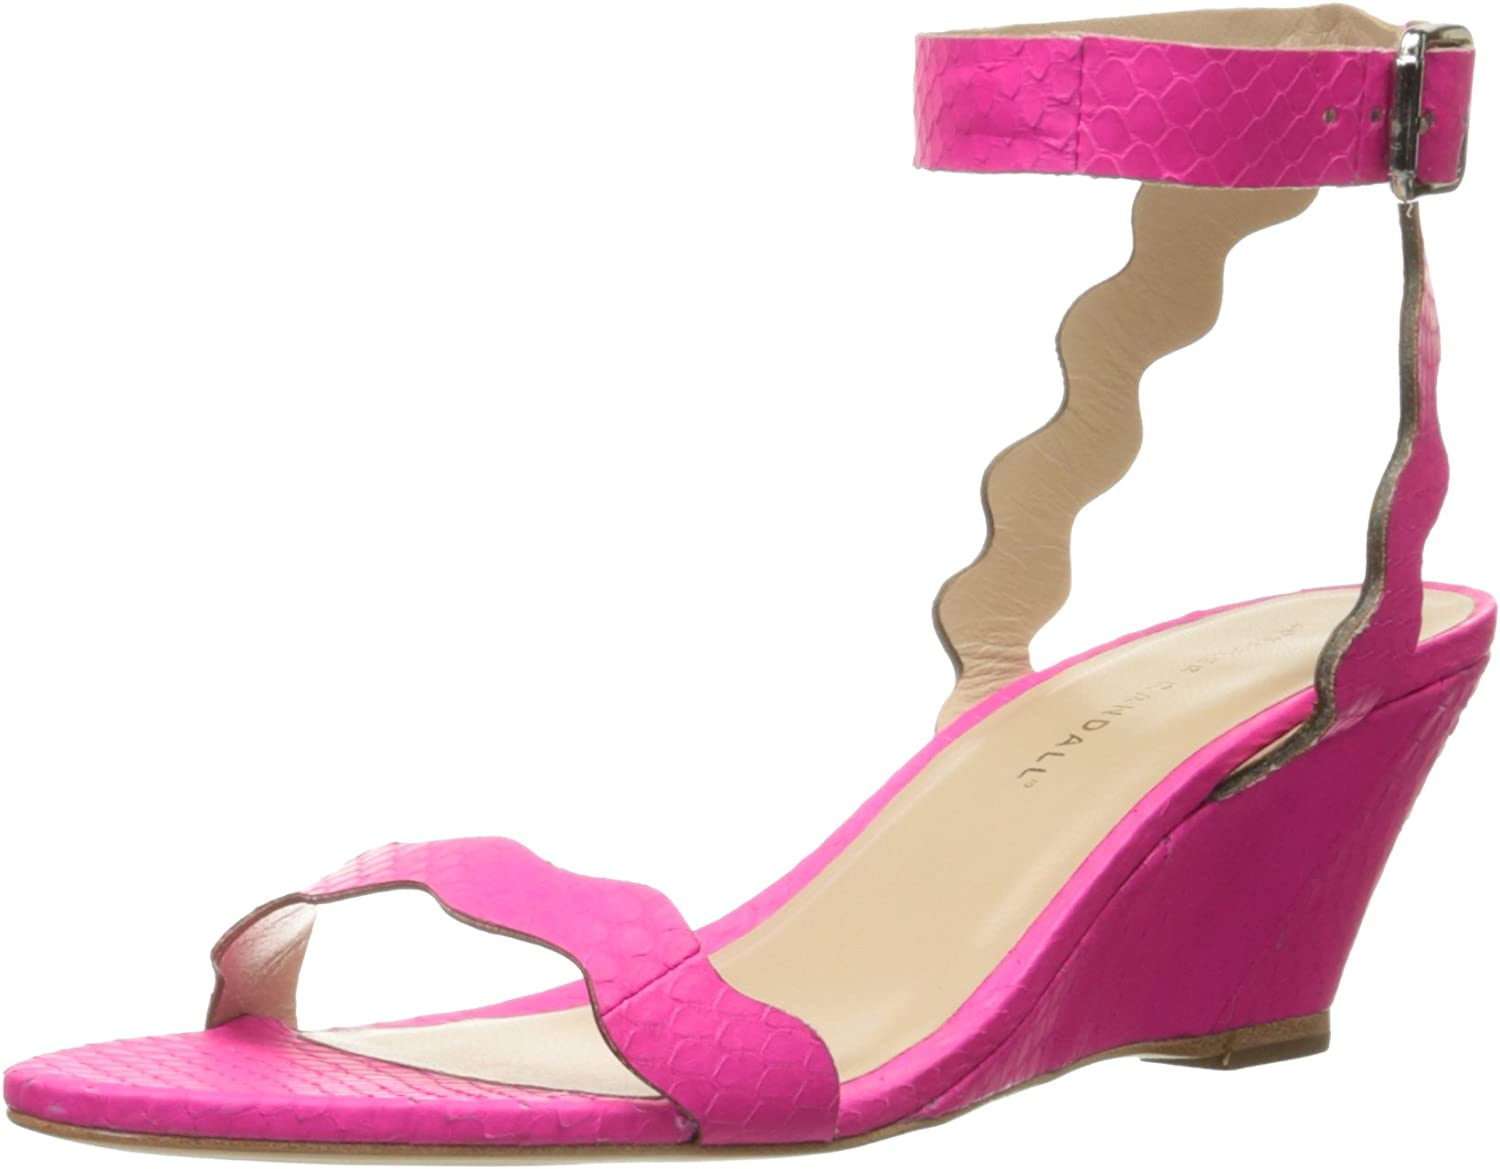 Loeffler Randall Women's Minnie-msn Wedge Sandals